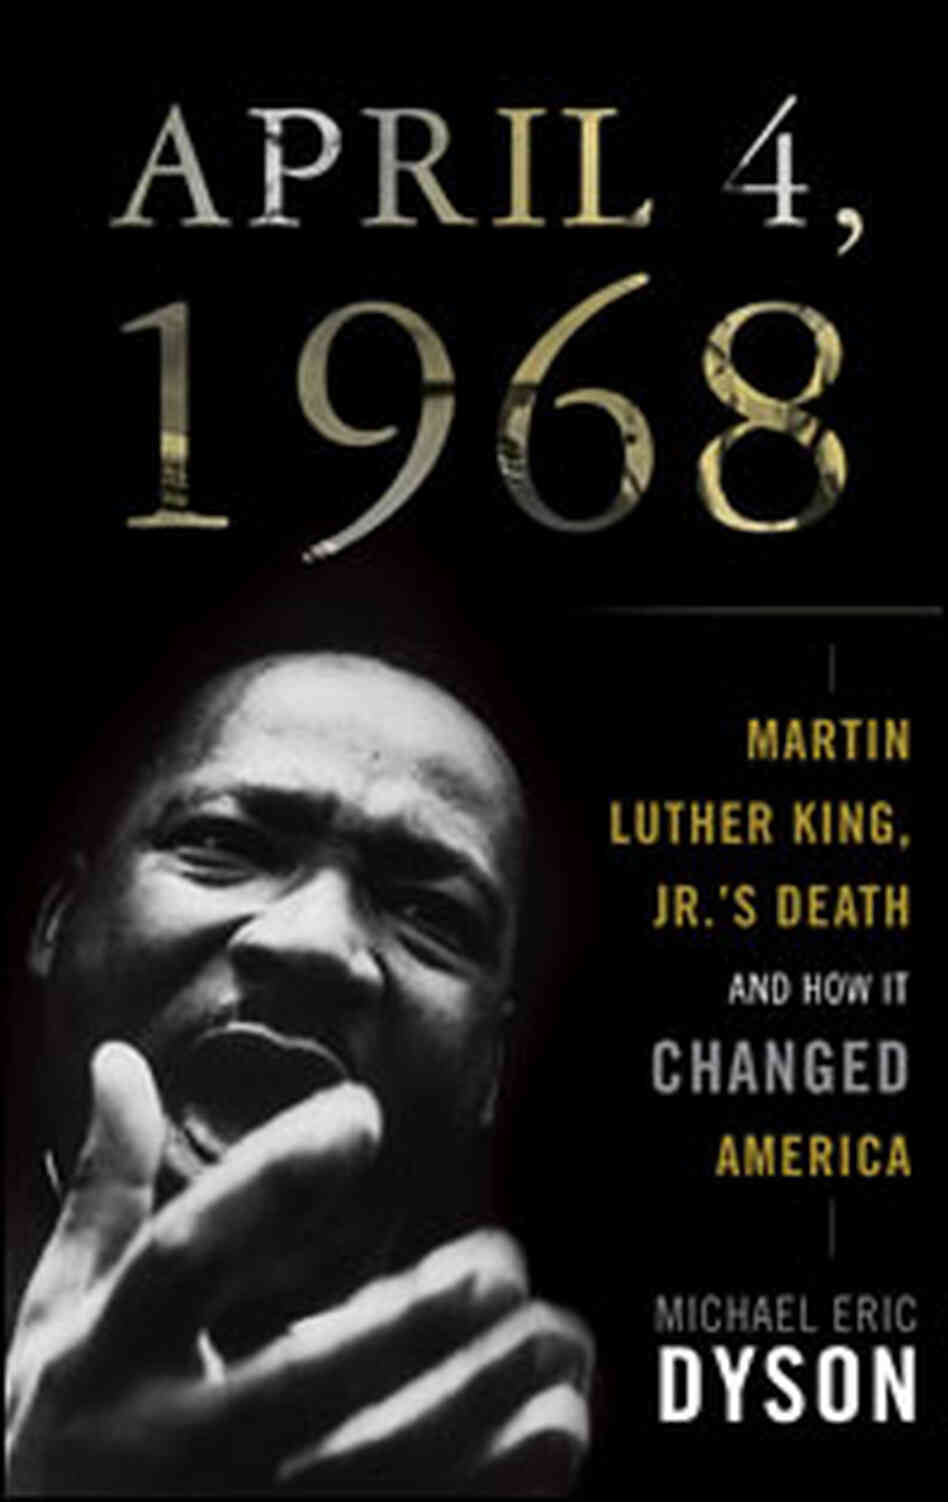 Martin Luther King Jr Dead Pictures Dyson Explores How MLK...